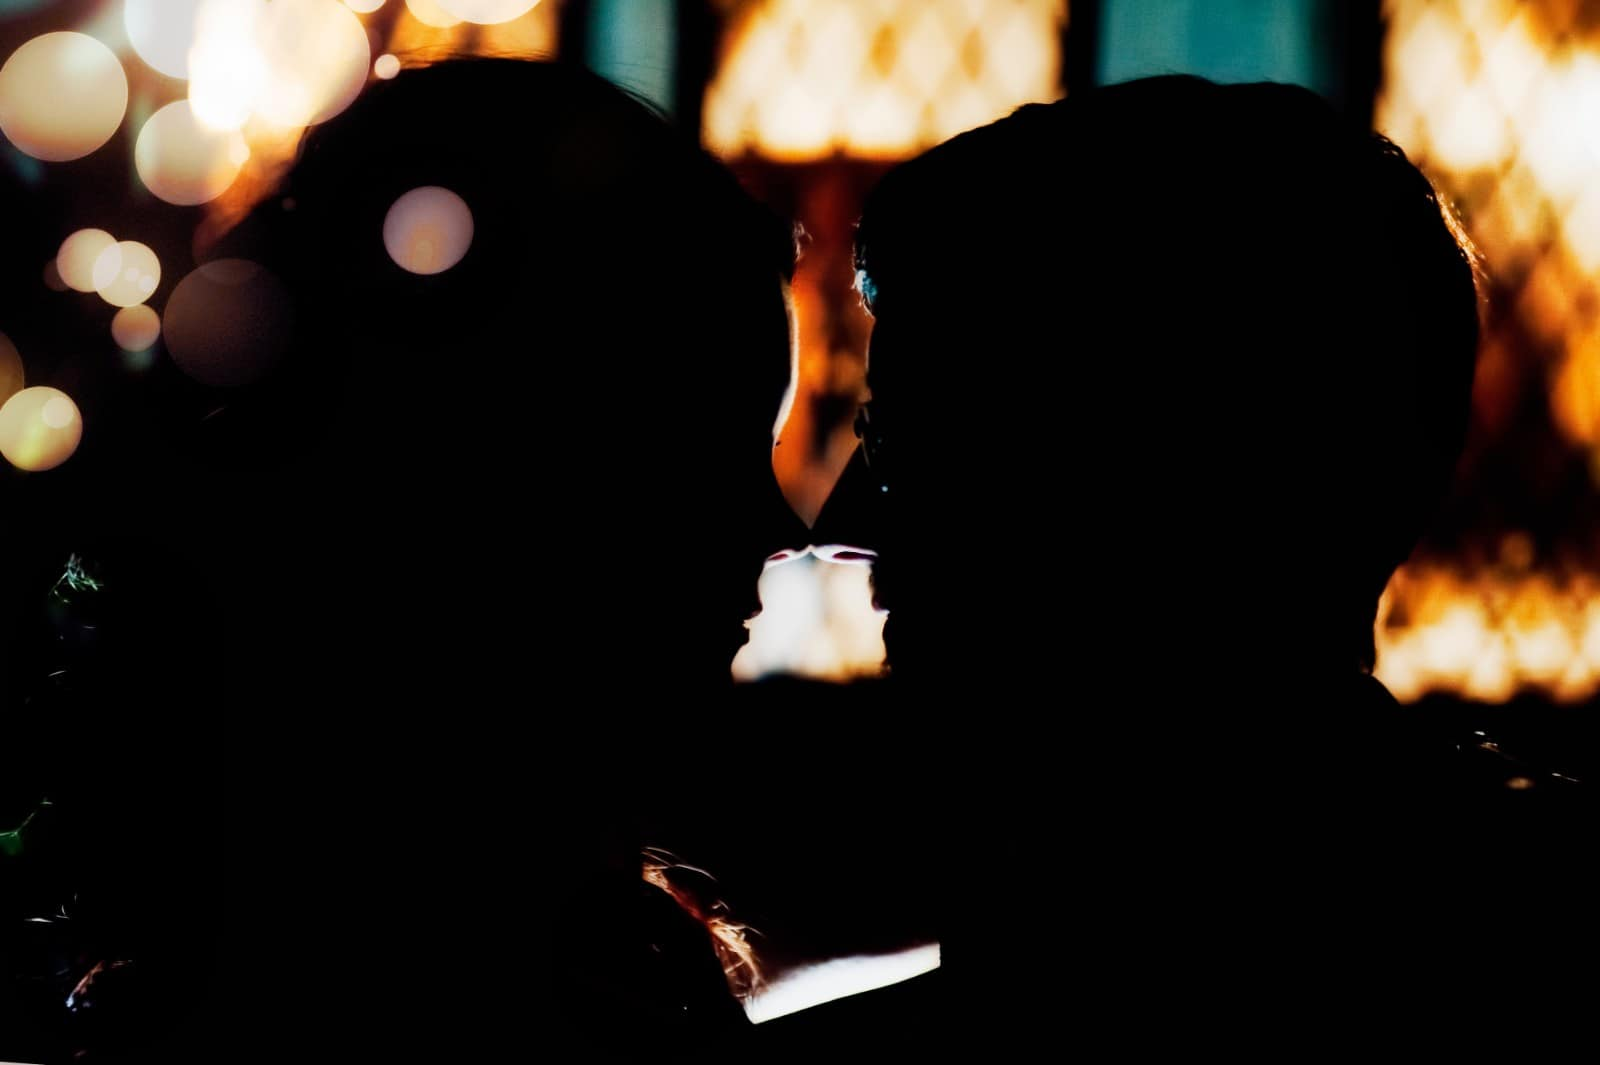 Silhouette of Bride and groom in front of a window after dark